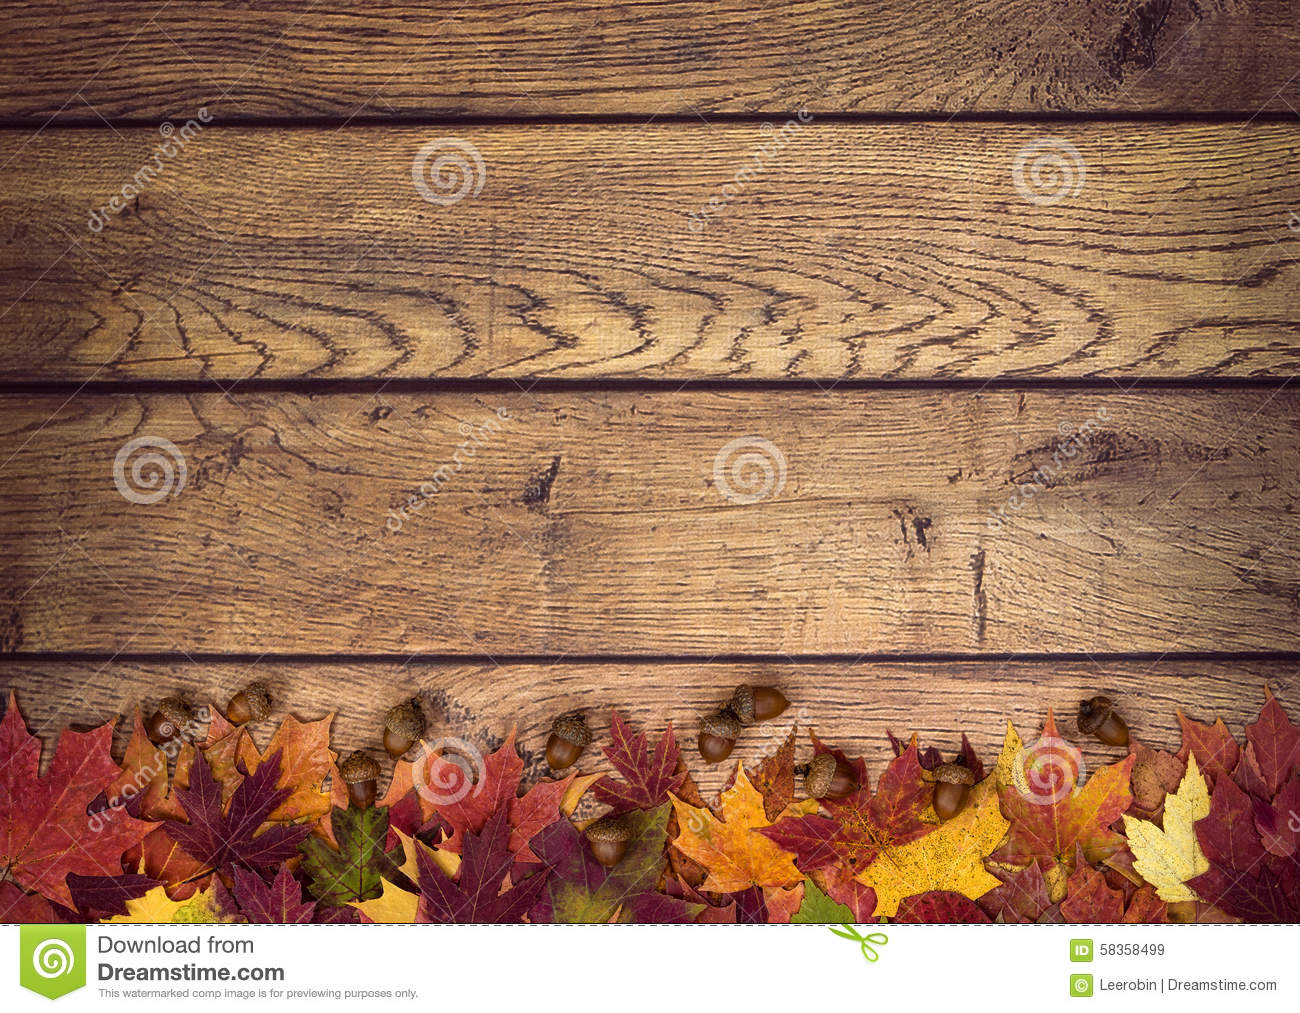 Hd Wallpaper Texture Fall Harvest Autumn Leaves And Acorns On Rustic Wooden Background Stock